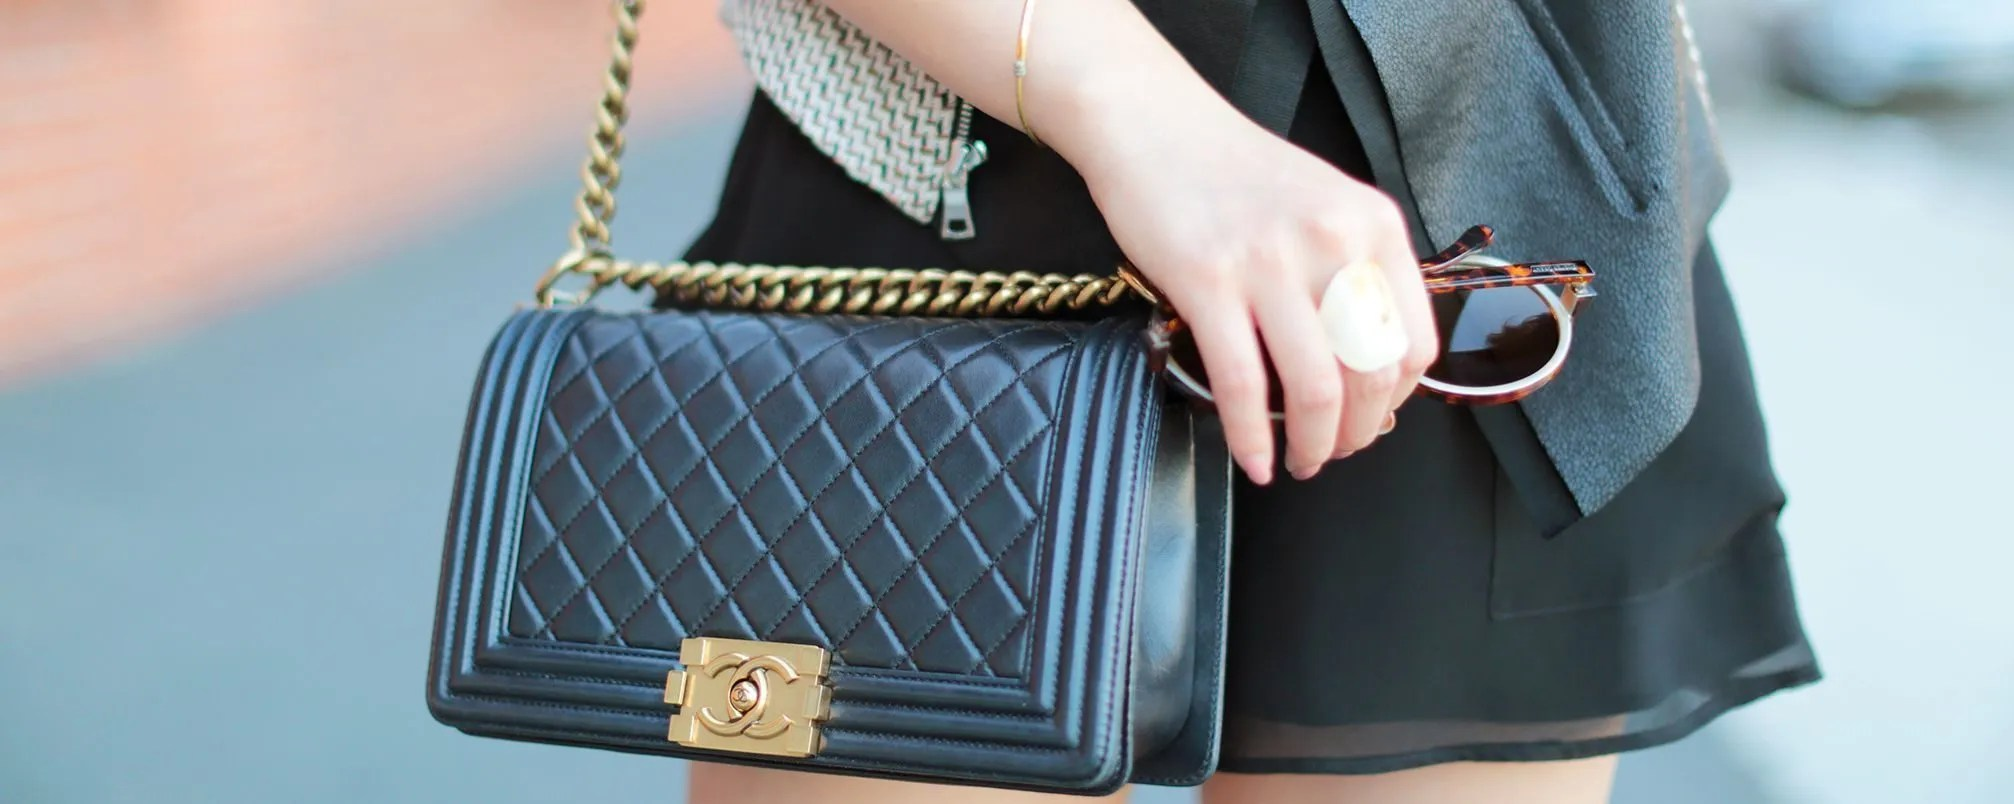 31b31584217a This definitive bag is designed exactly to Coco Chanel s high standards.  Simple but elegant